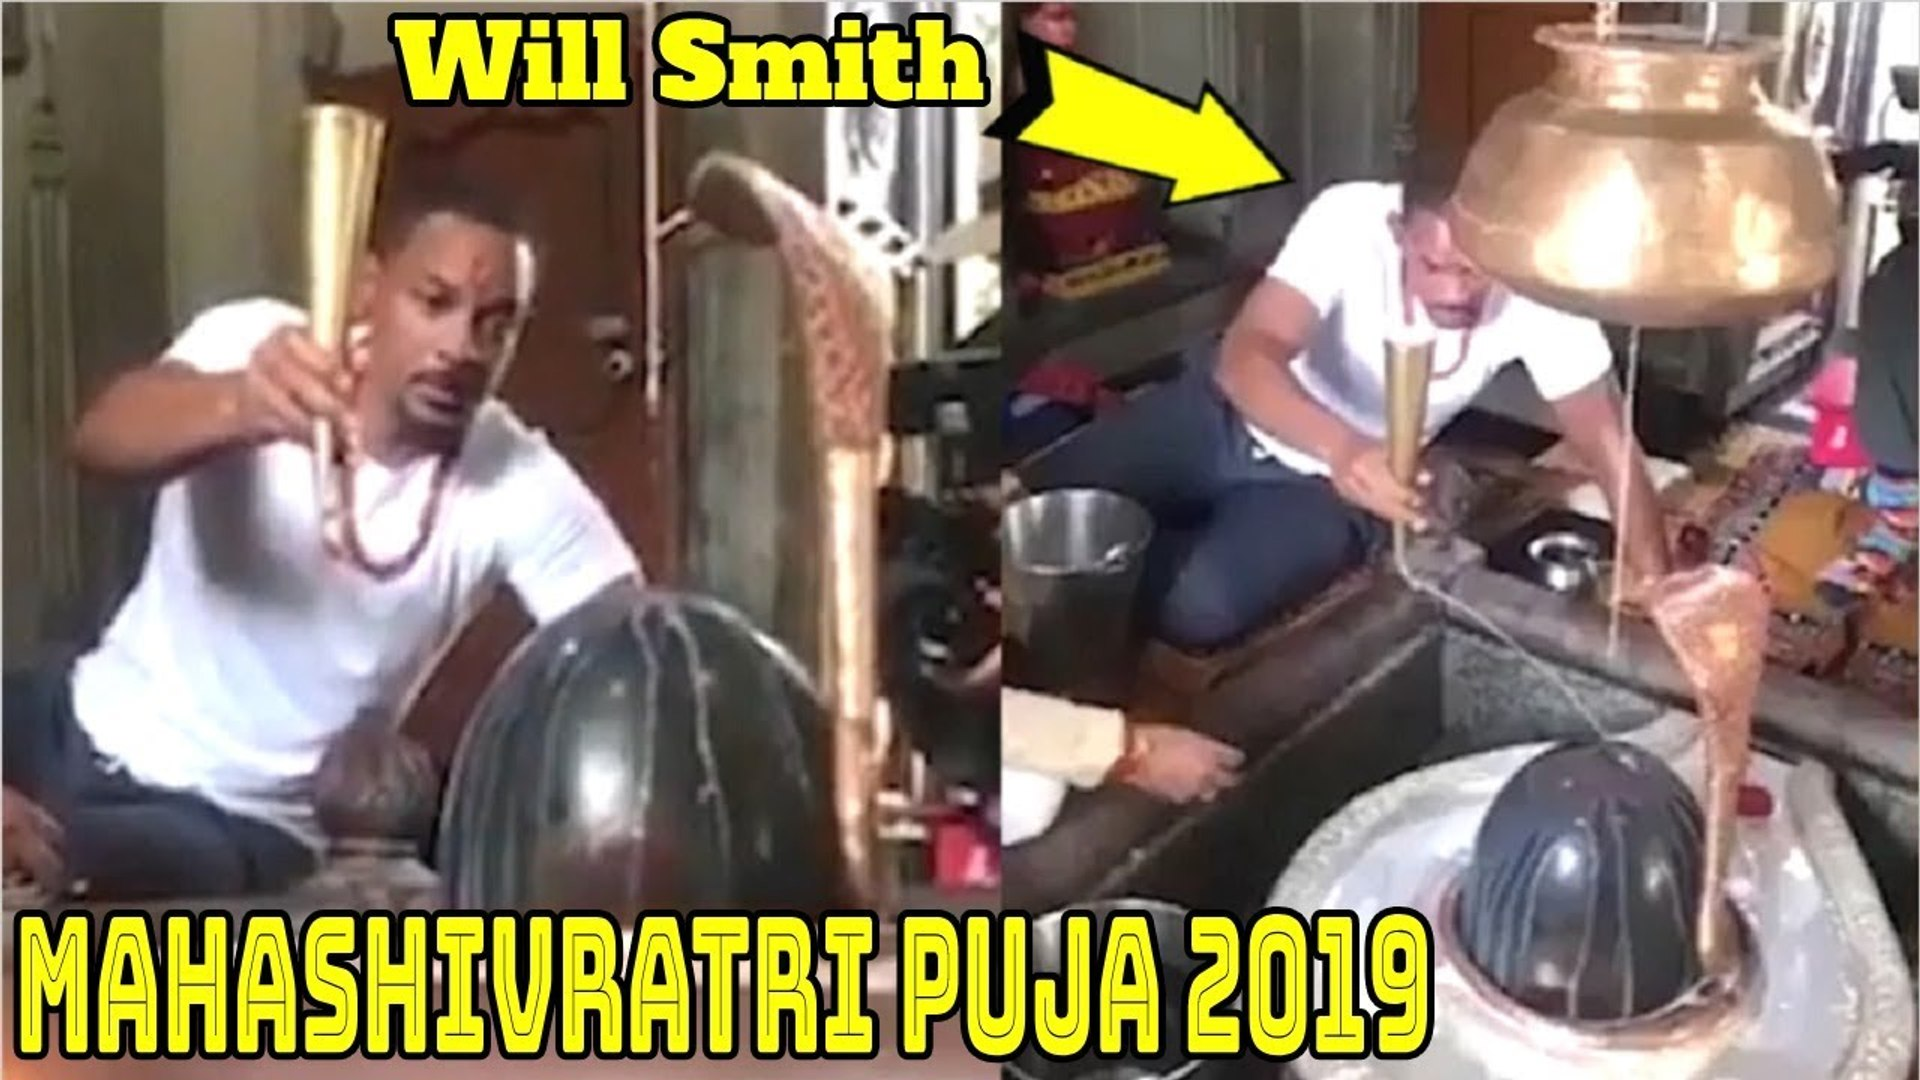 Hollywood Superstar Will Smith Does Mahashivratri Puja - Shows LOVE & Respect For Indian Festiva